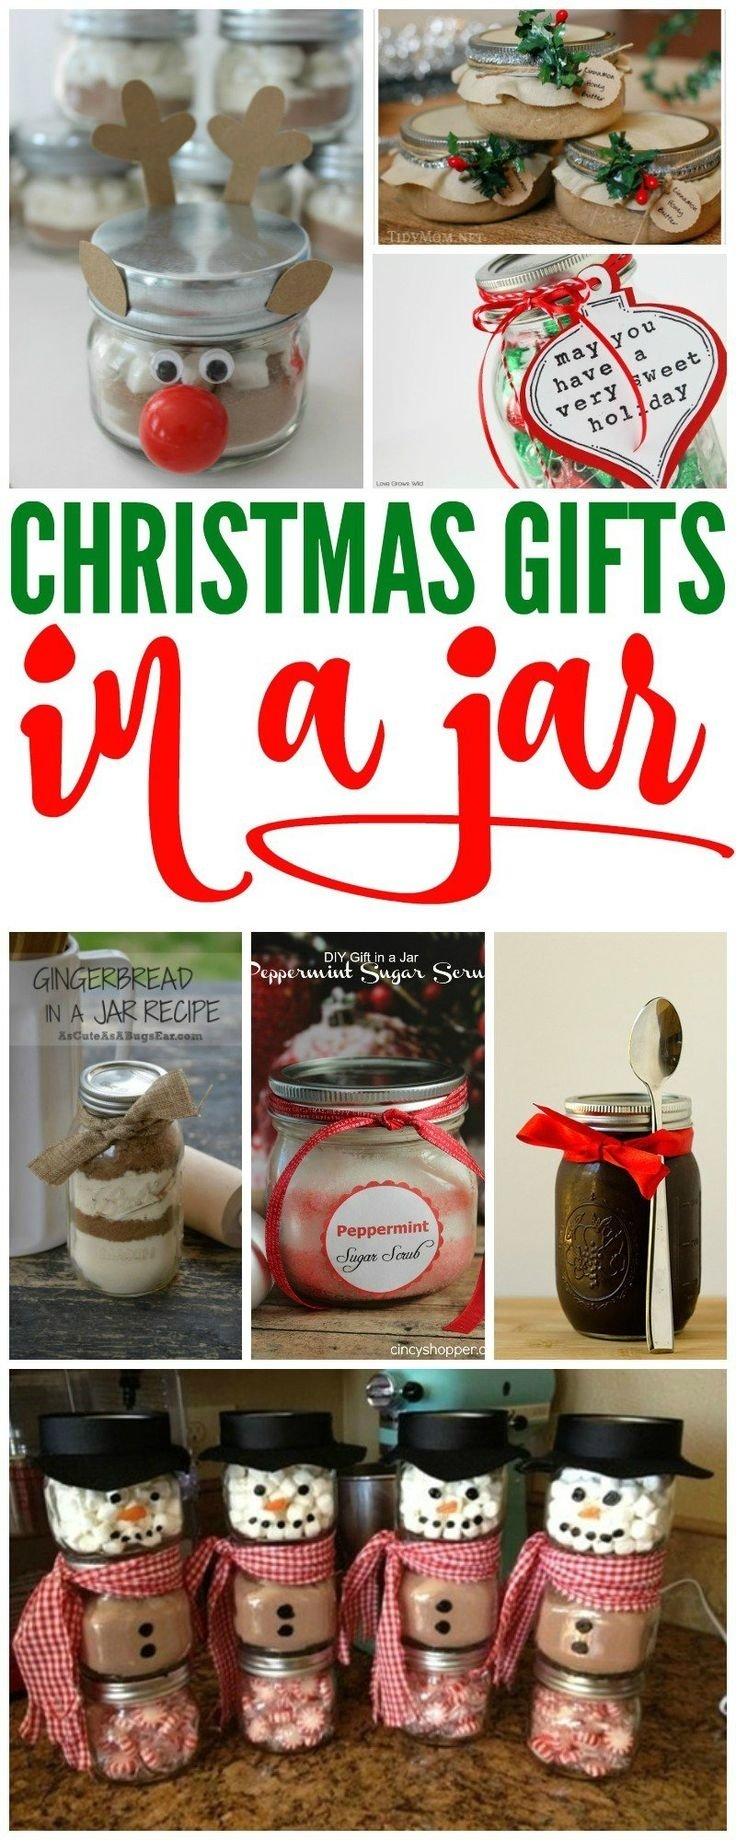 1034 best diy gift ideas images on pinterest | hand made gifts